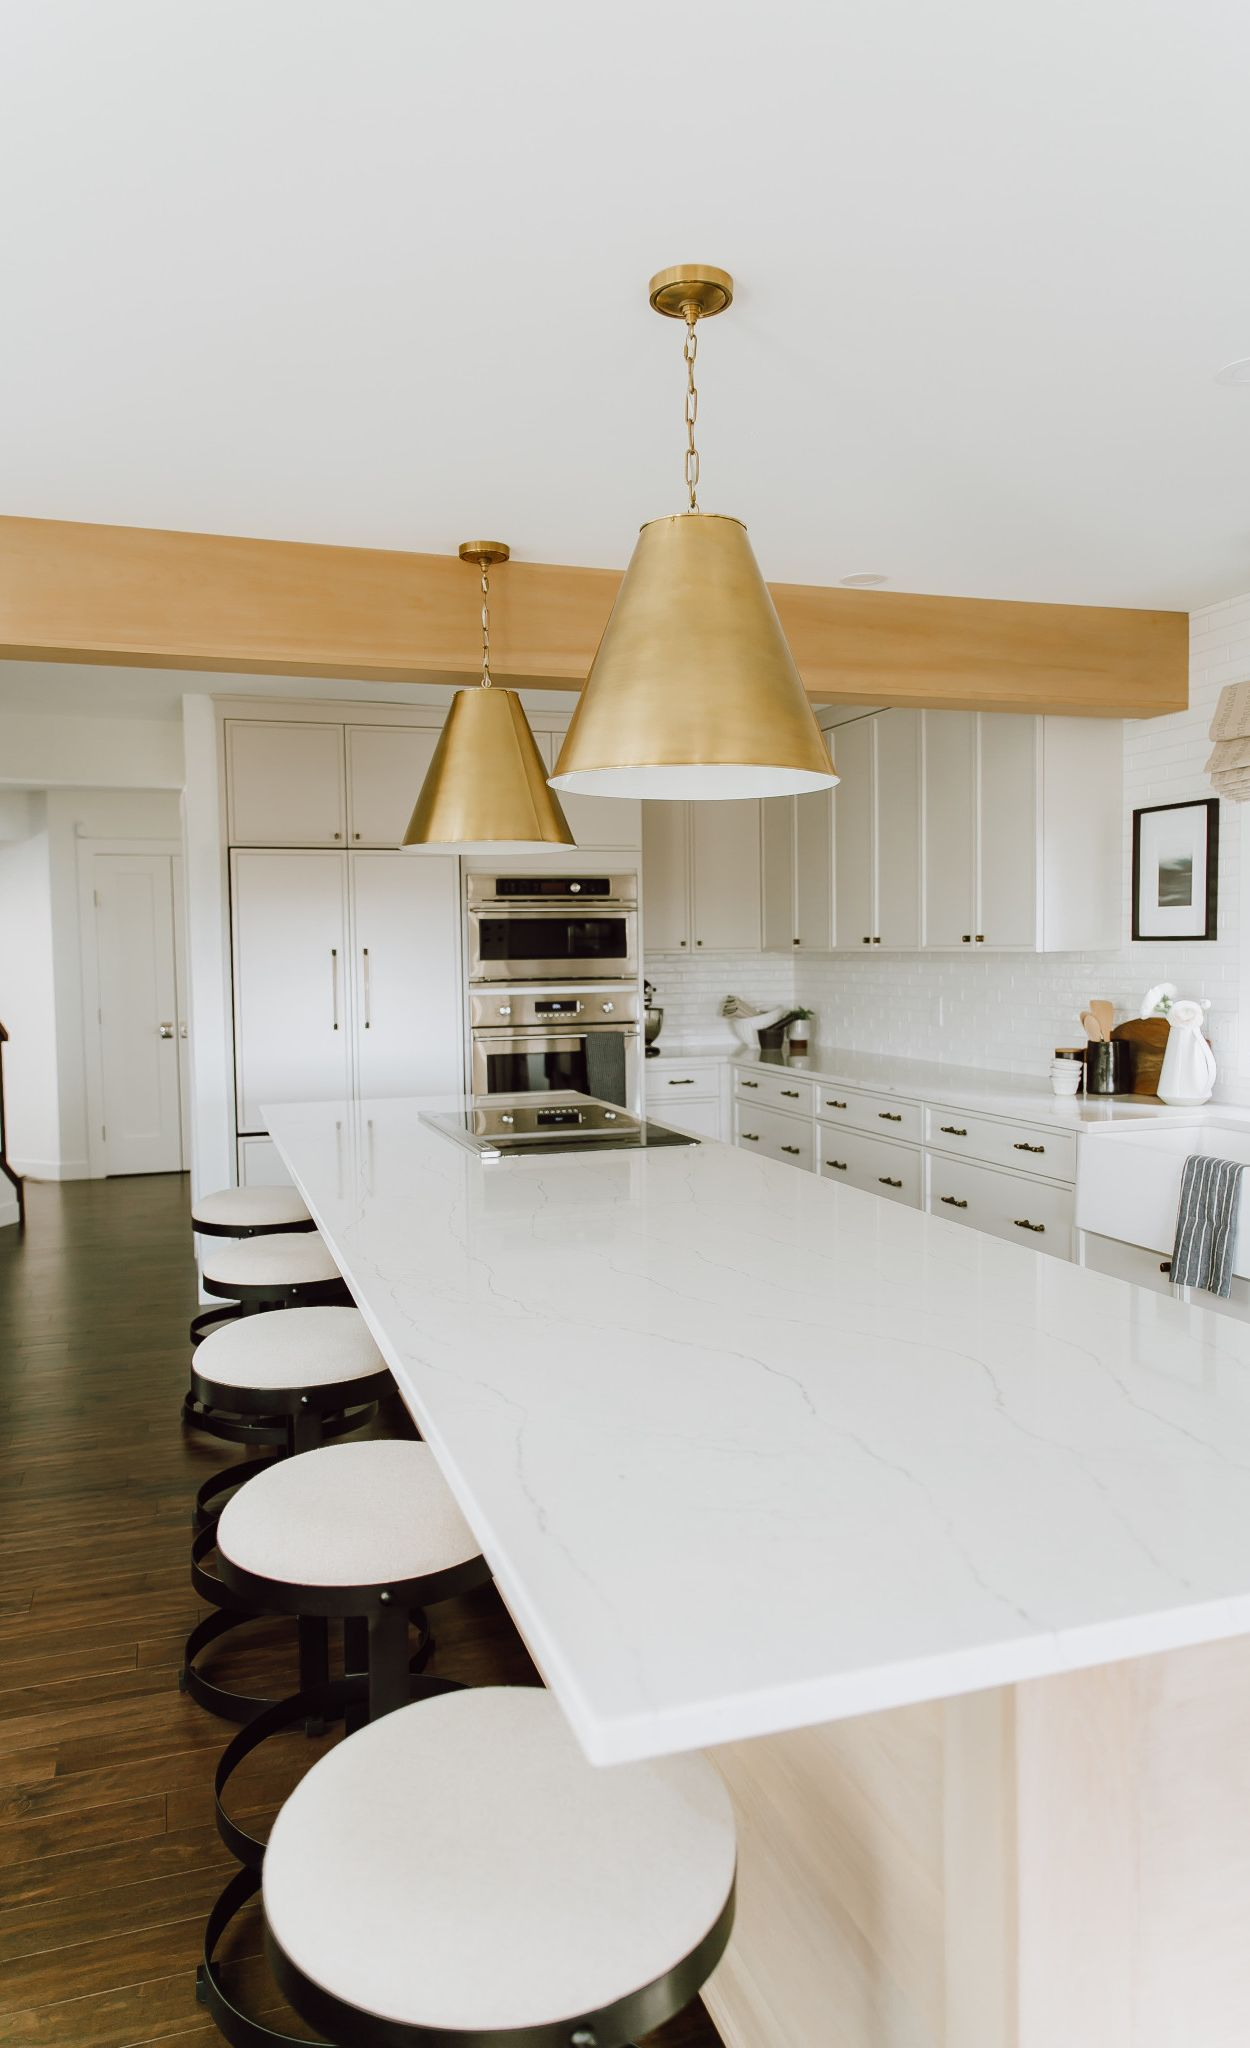 Cambria Ella kitchen island paired with wood cabinets.